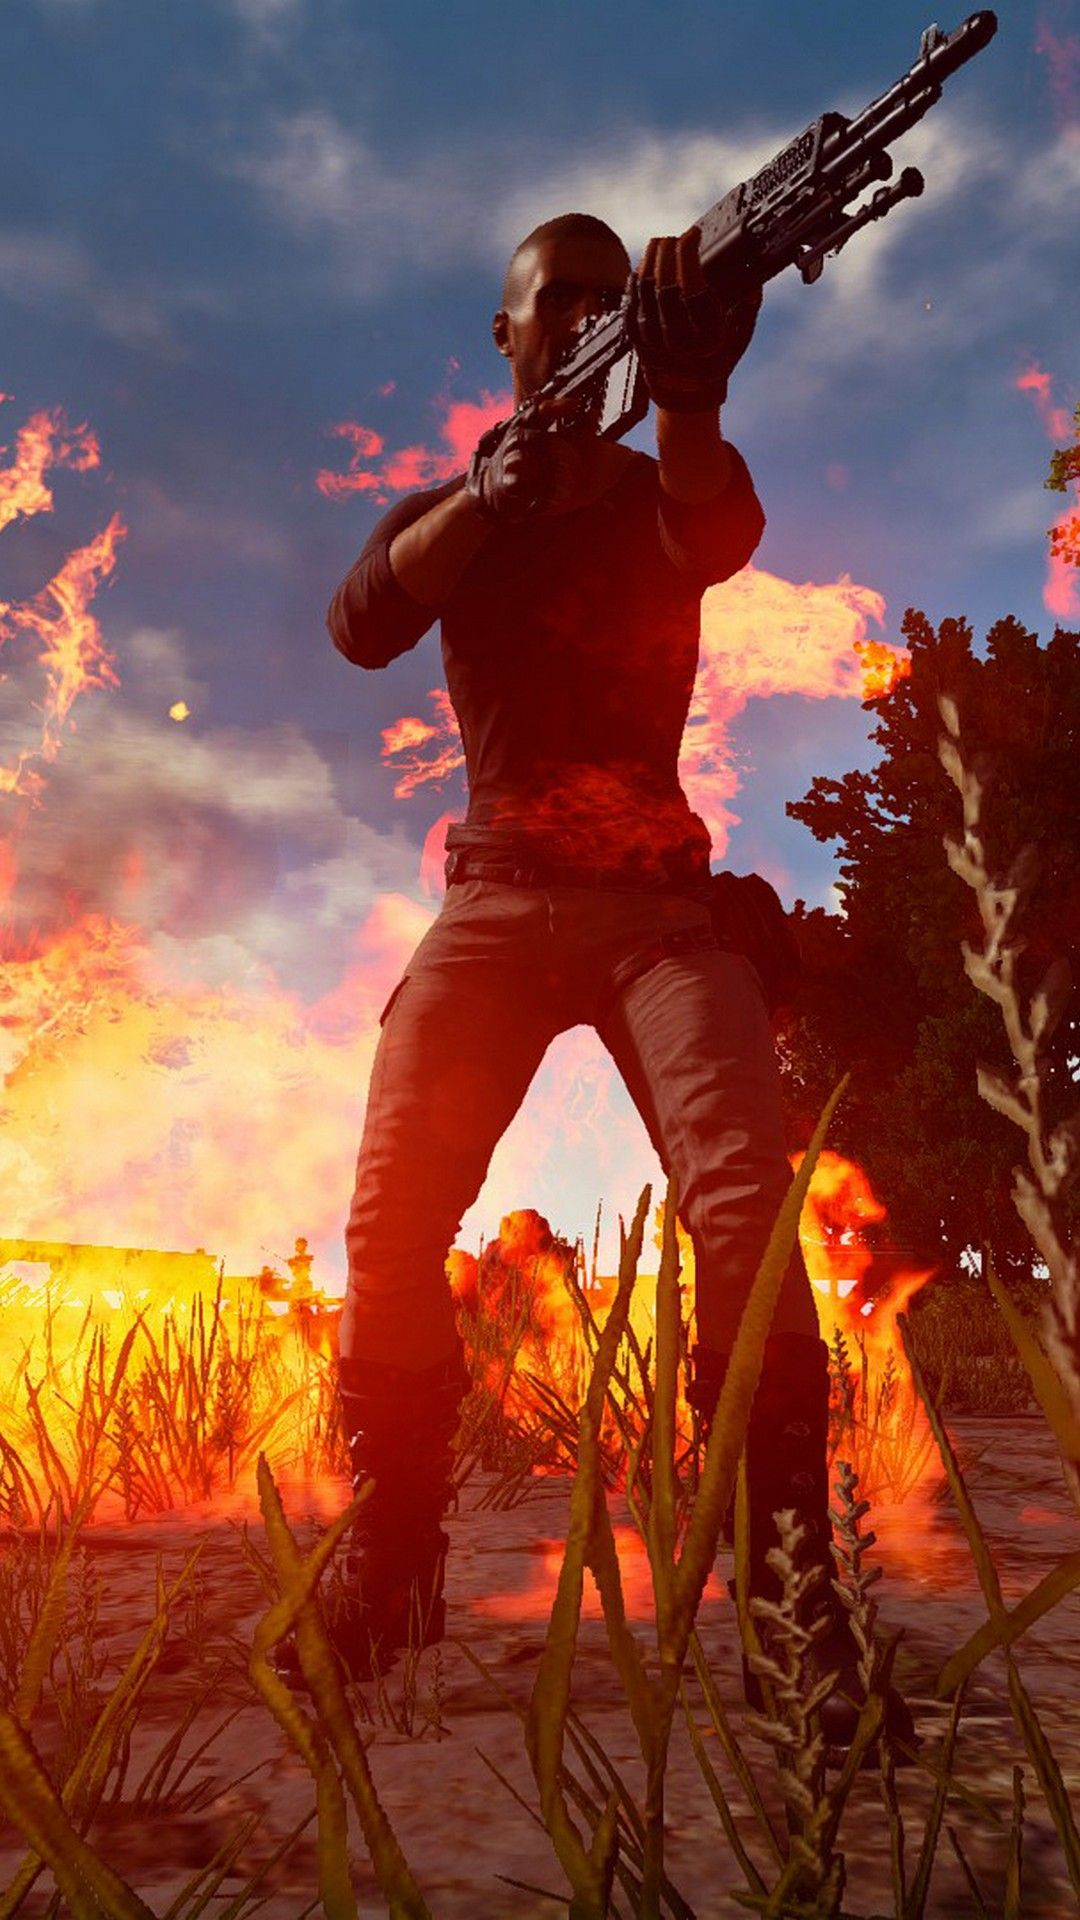 PUBG Mobile Wallpaper iPhone HD (With images) | Mobile ...